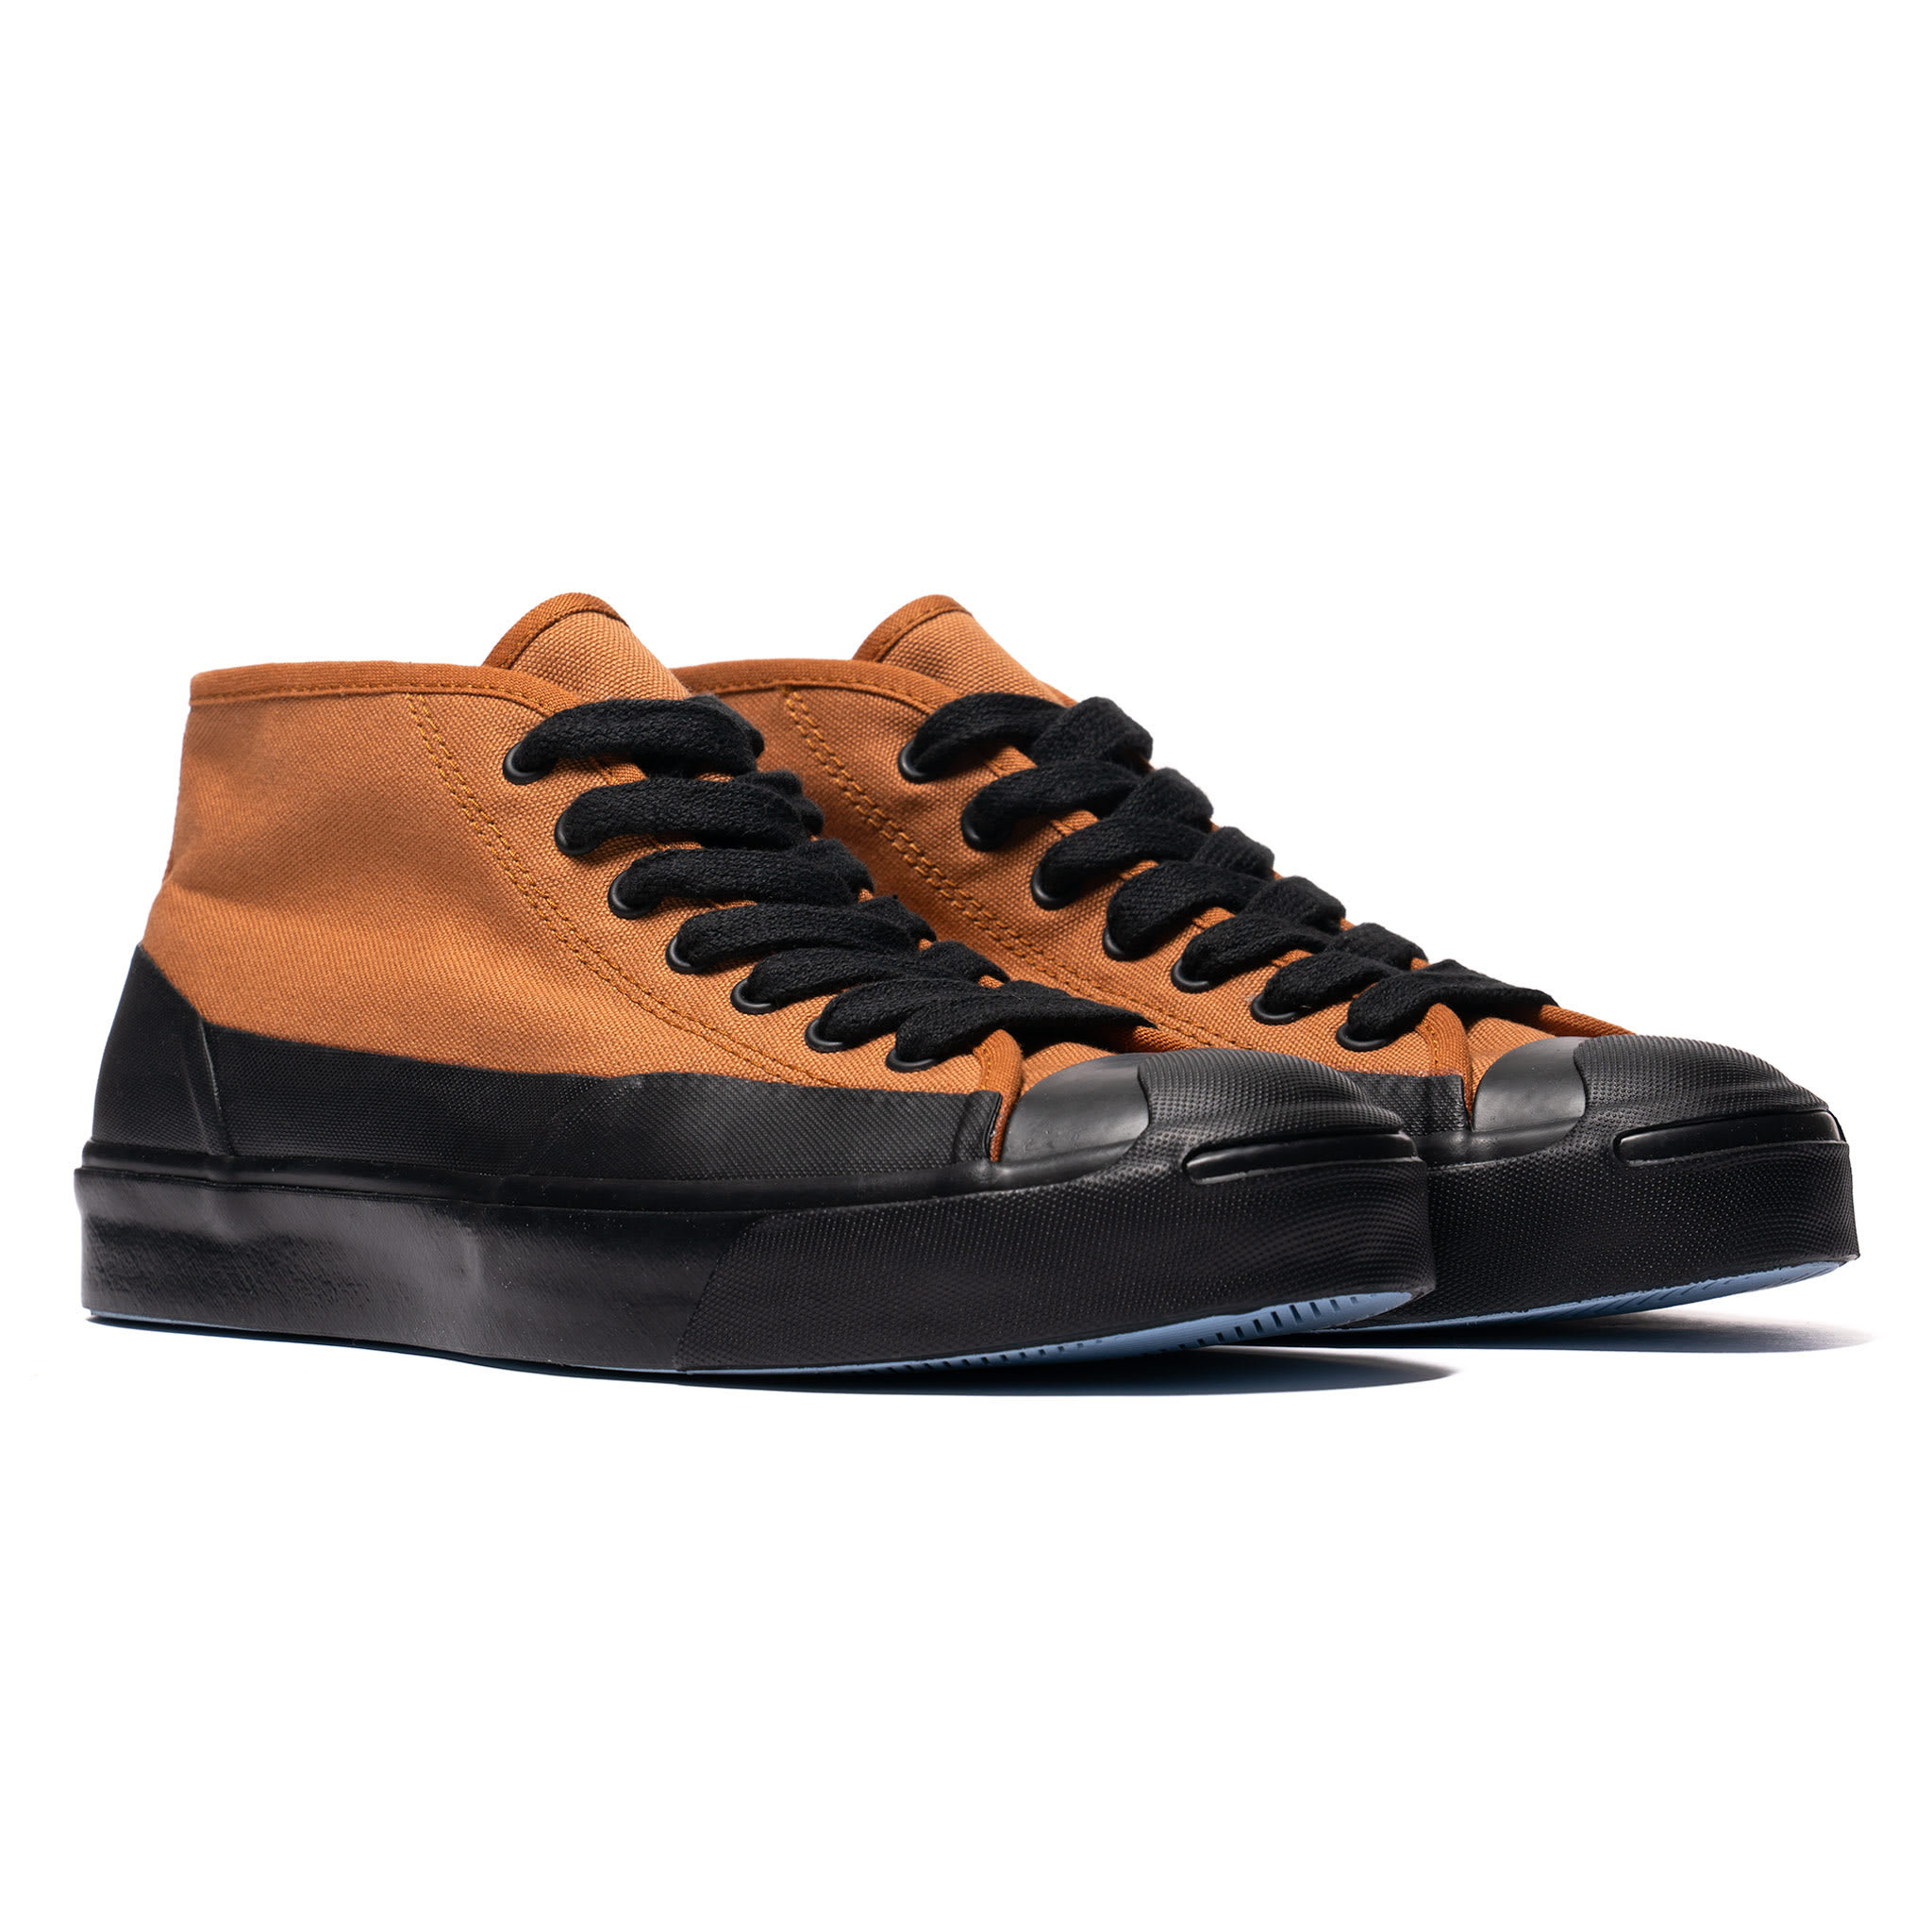 1ddb573107b21 Converse once again teams up with A AP Nast for an innovative take on the Jack  Purcell silhouette. The Trillmatic rapper